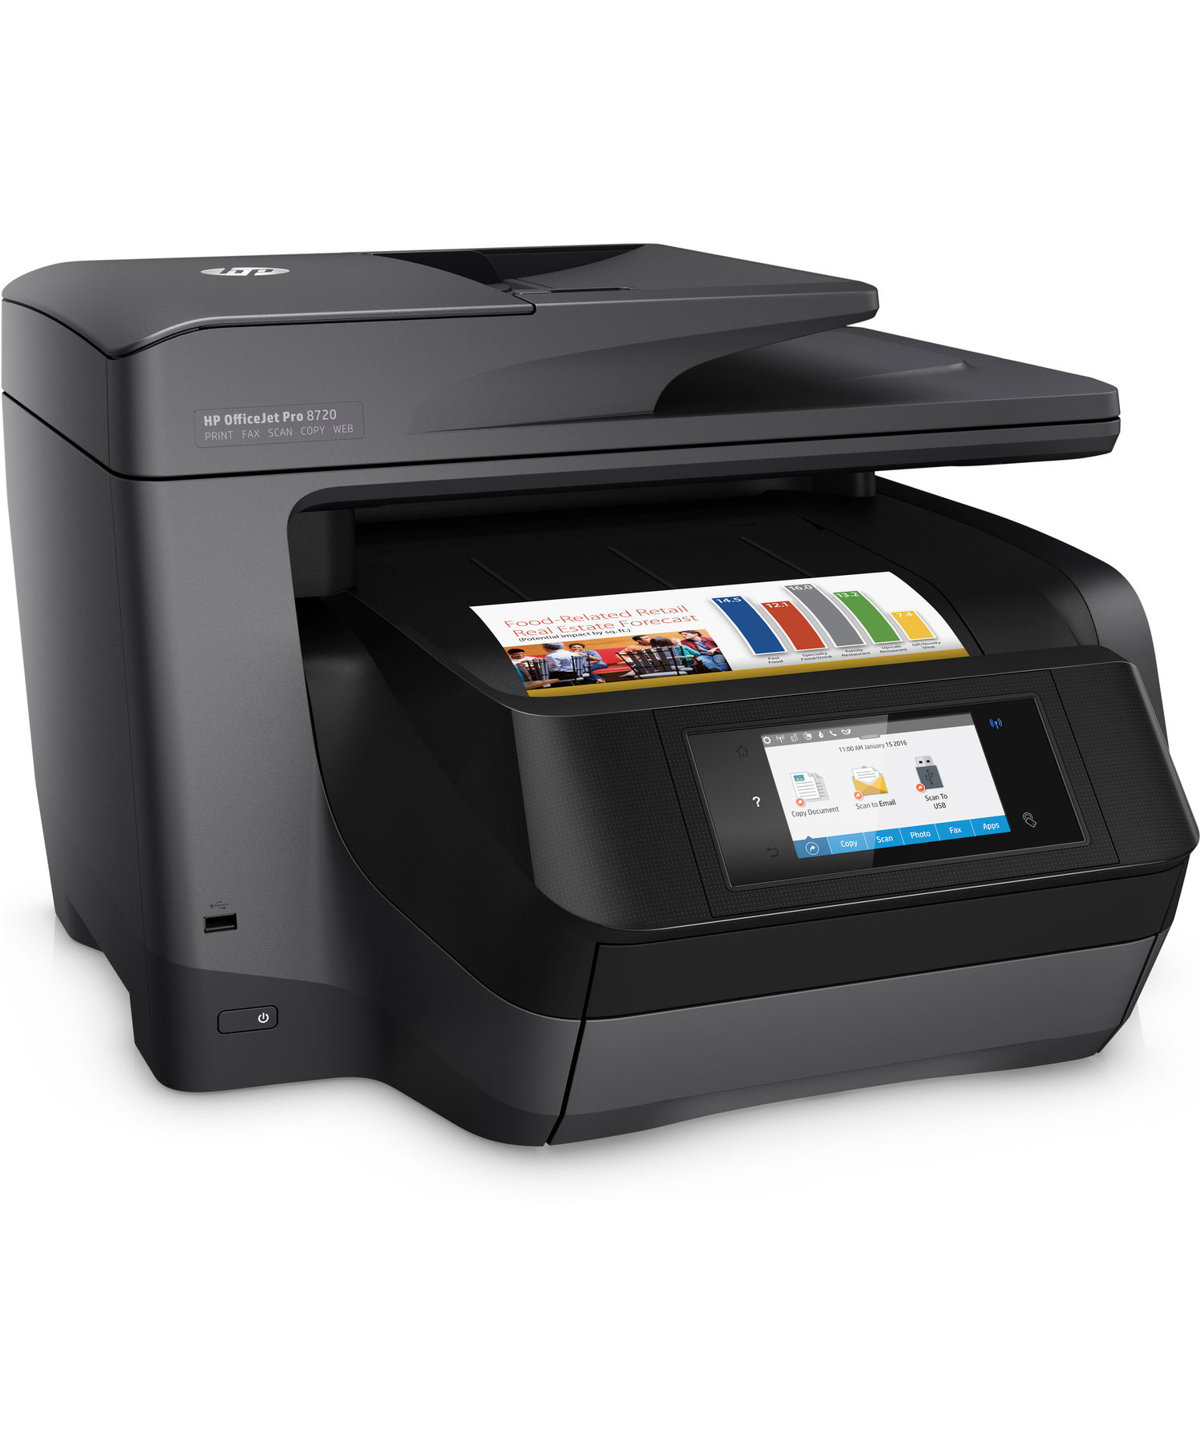 e and mfd all function one hp printers reviews officejet pro techradar pc review multi office in peripherals scanners jet mac